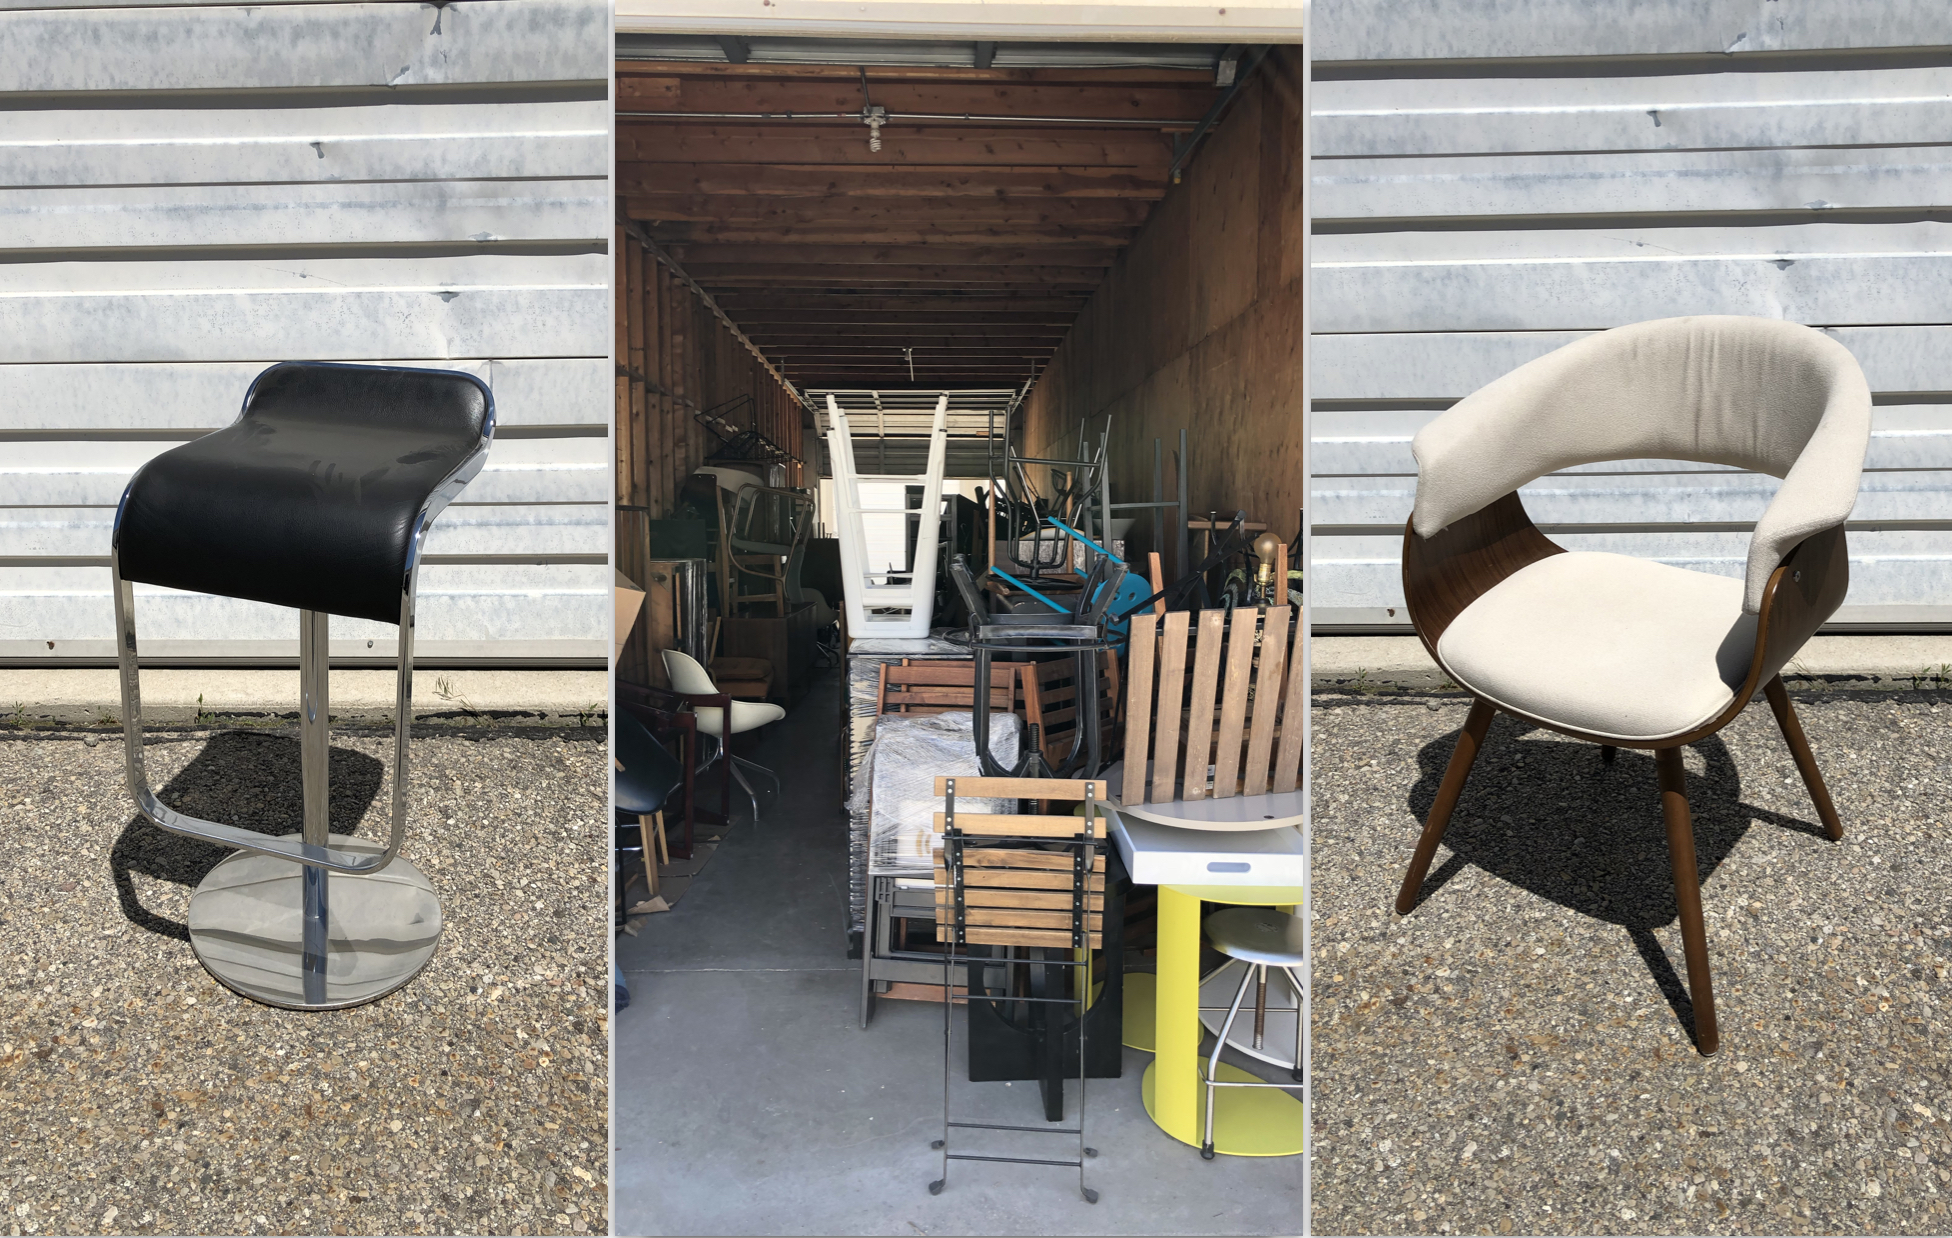 Staging Furniture For Sale >> Chc Staging Furniture Sale